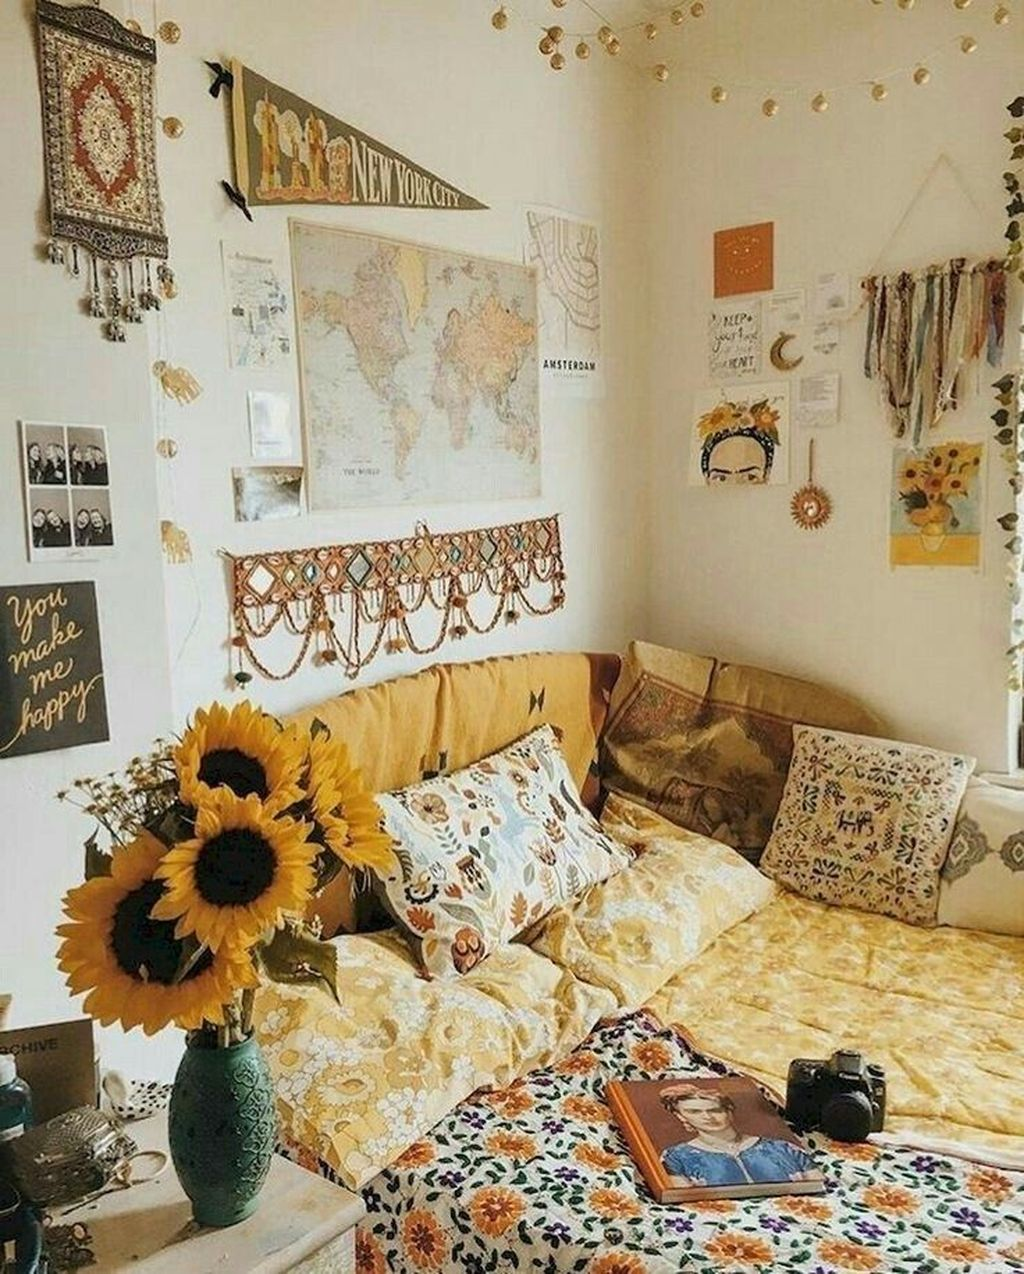 Stunning Hippie Room Decor Ideas You Never Seen Before 08